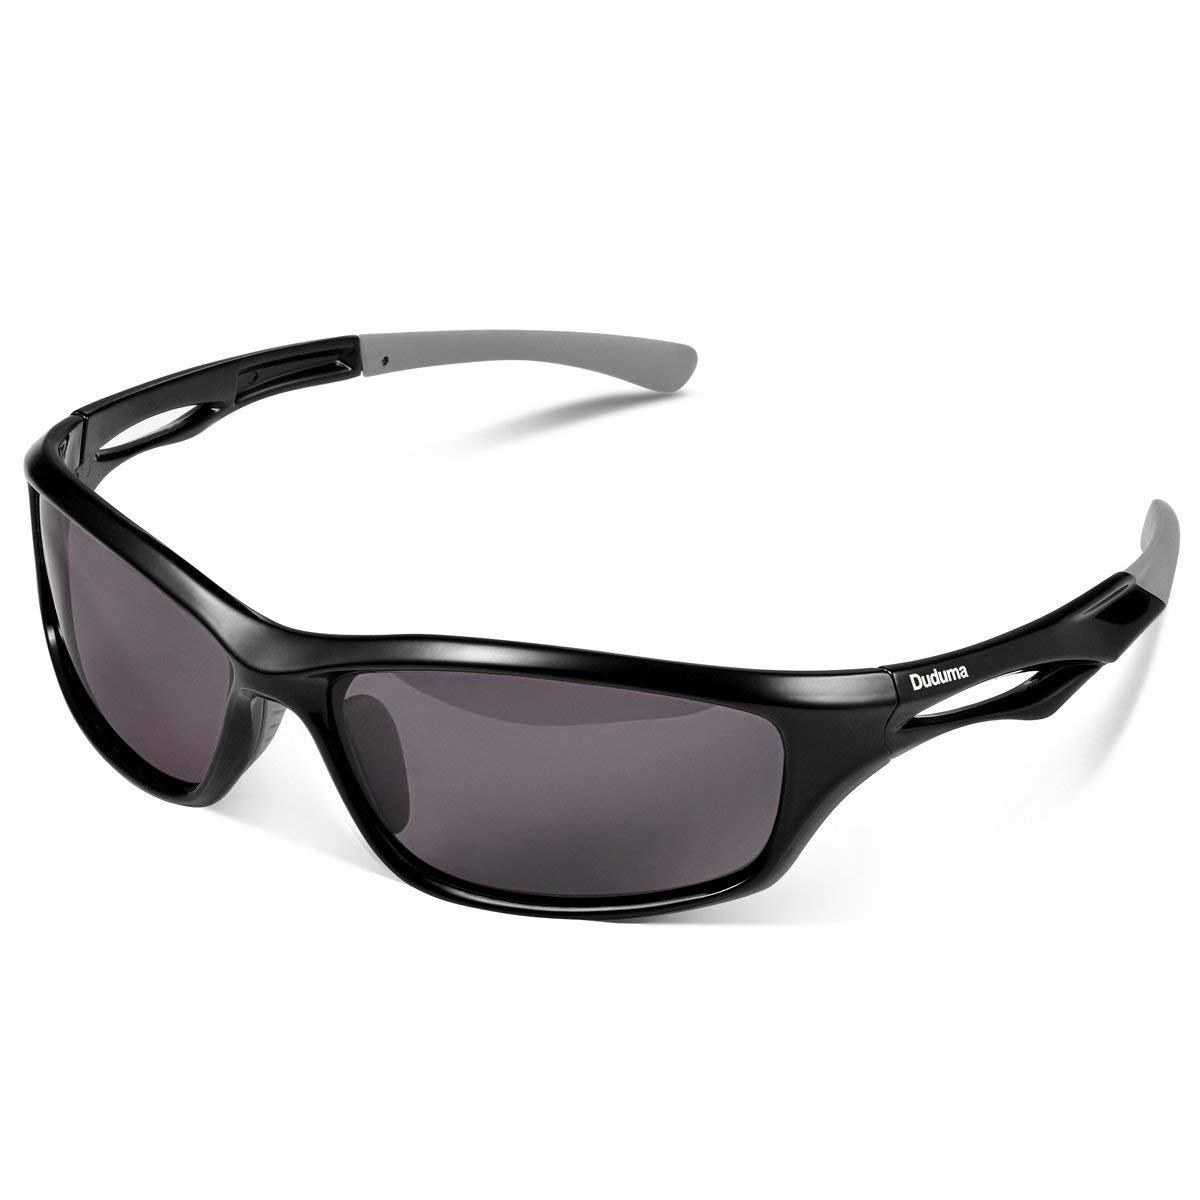 90561898d4b5e 5 Best Fishing Sunglasses Under 50 – 2018 Reviews and Buying Guide